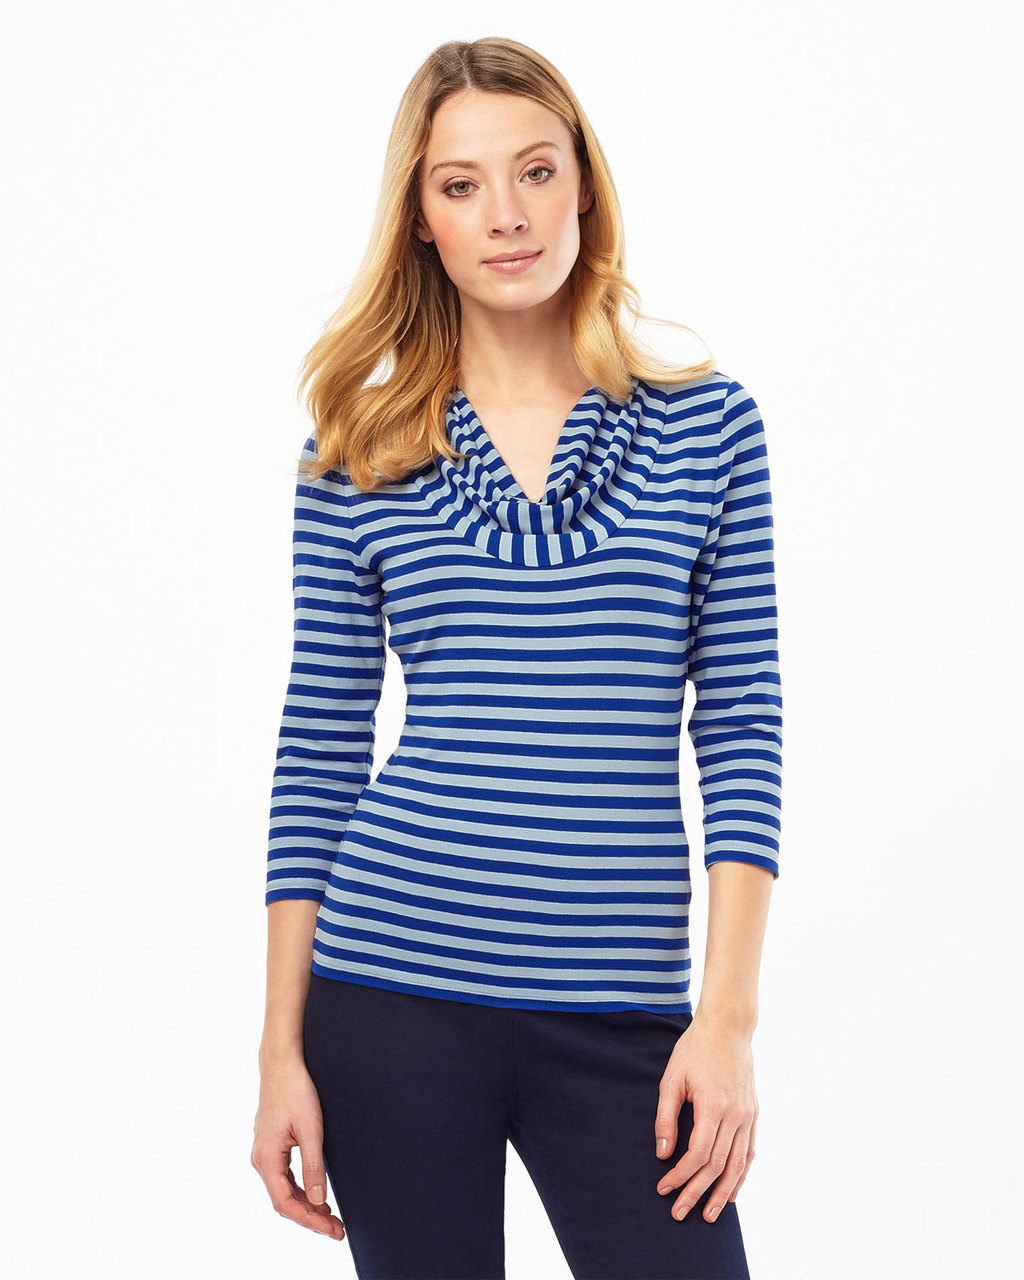 Carrie Stripe Top - neckline: cowl/draped neck; pattern: horizontal stripes; secondary colour: navy; predominant colour: denim; occasions: casual, creative work; length: standard; style: top; fibres: viscose/rayon - stretch; fit: tight; sleeve length: 3/4 length; sleeve style: standard; pattern type: fabric; texture group: jersey - stretchy/drapey; season: s/s 2016; wardrobe: highlight